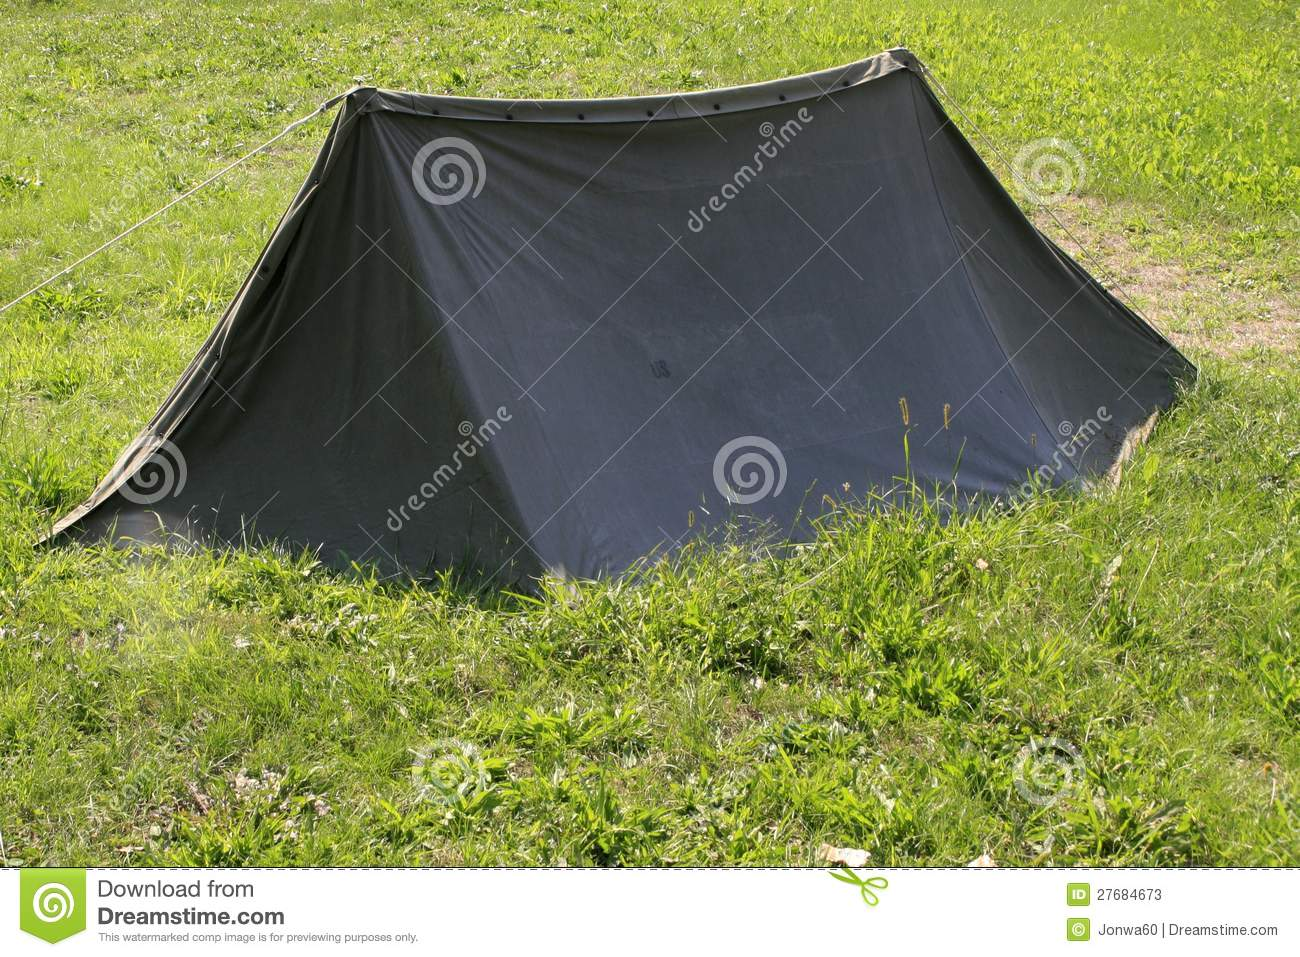 A US Army Surplus Puptent set up in green grass & Army Puptent stock image. Image of army summer camping - 27684673